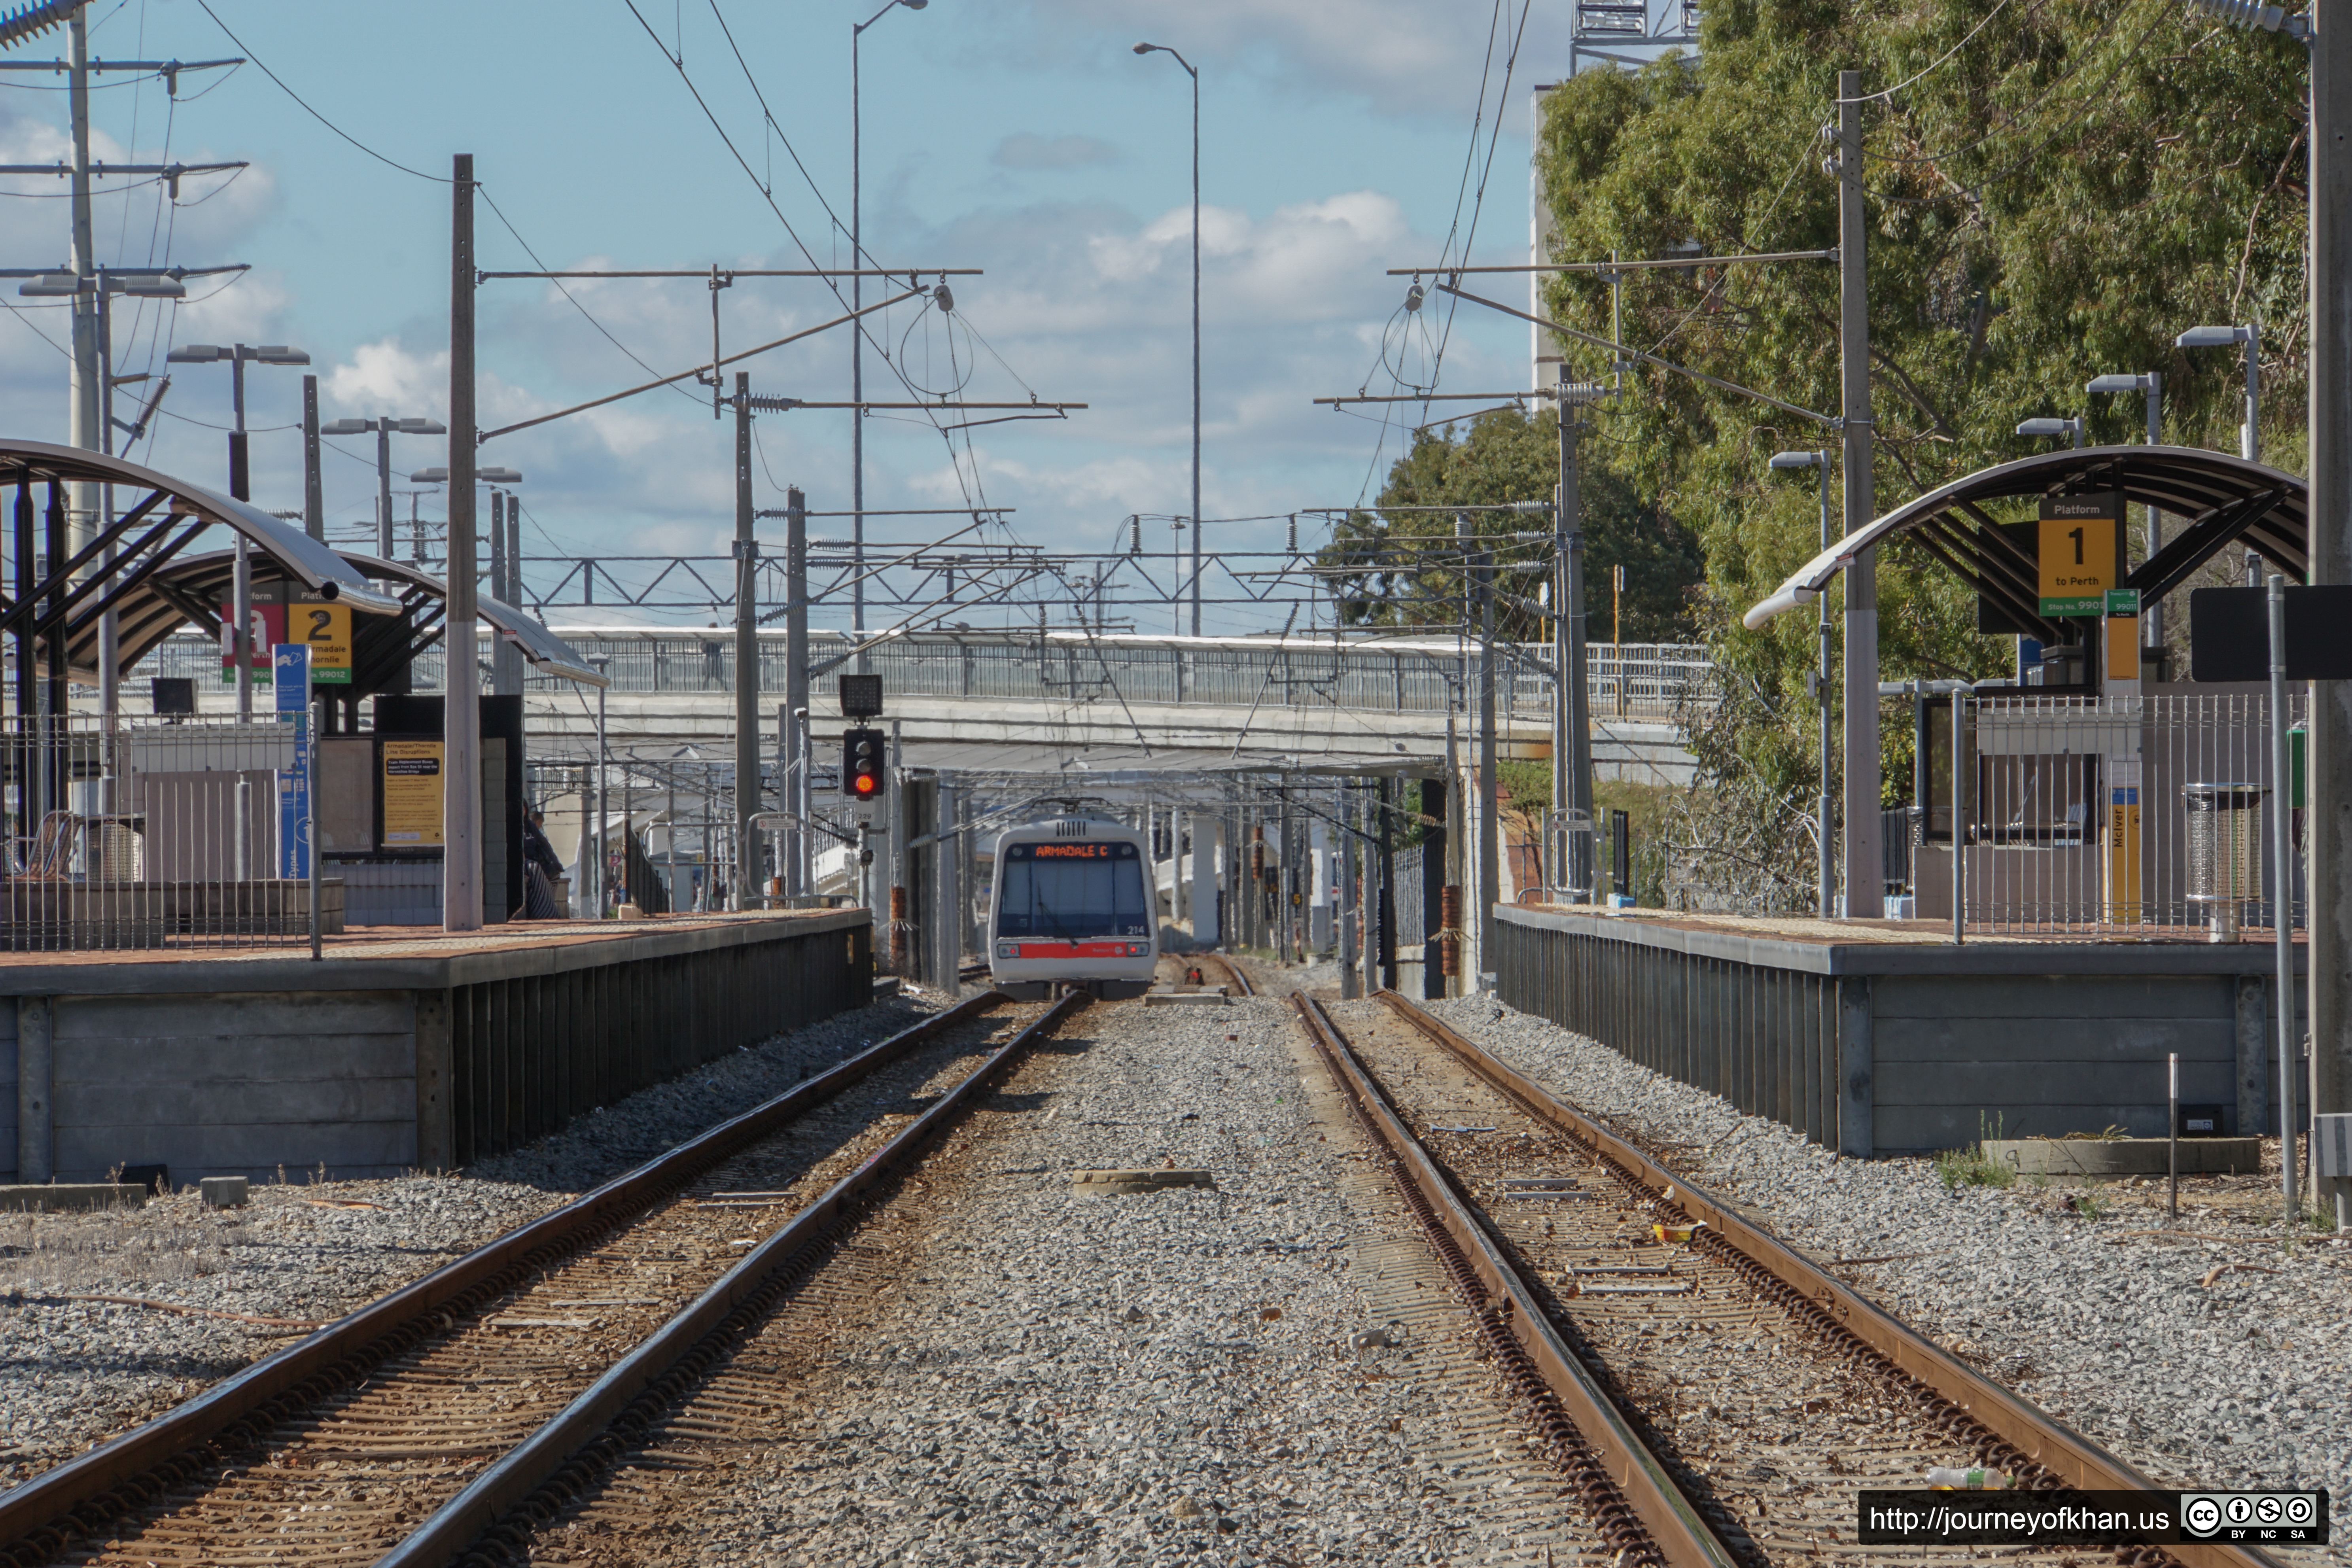 Train to Armadale (High Resolution)